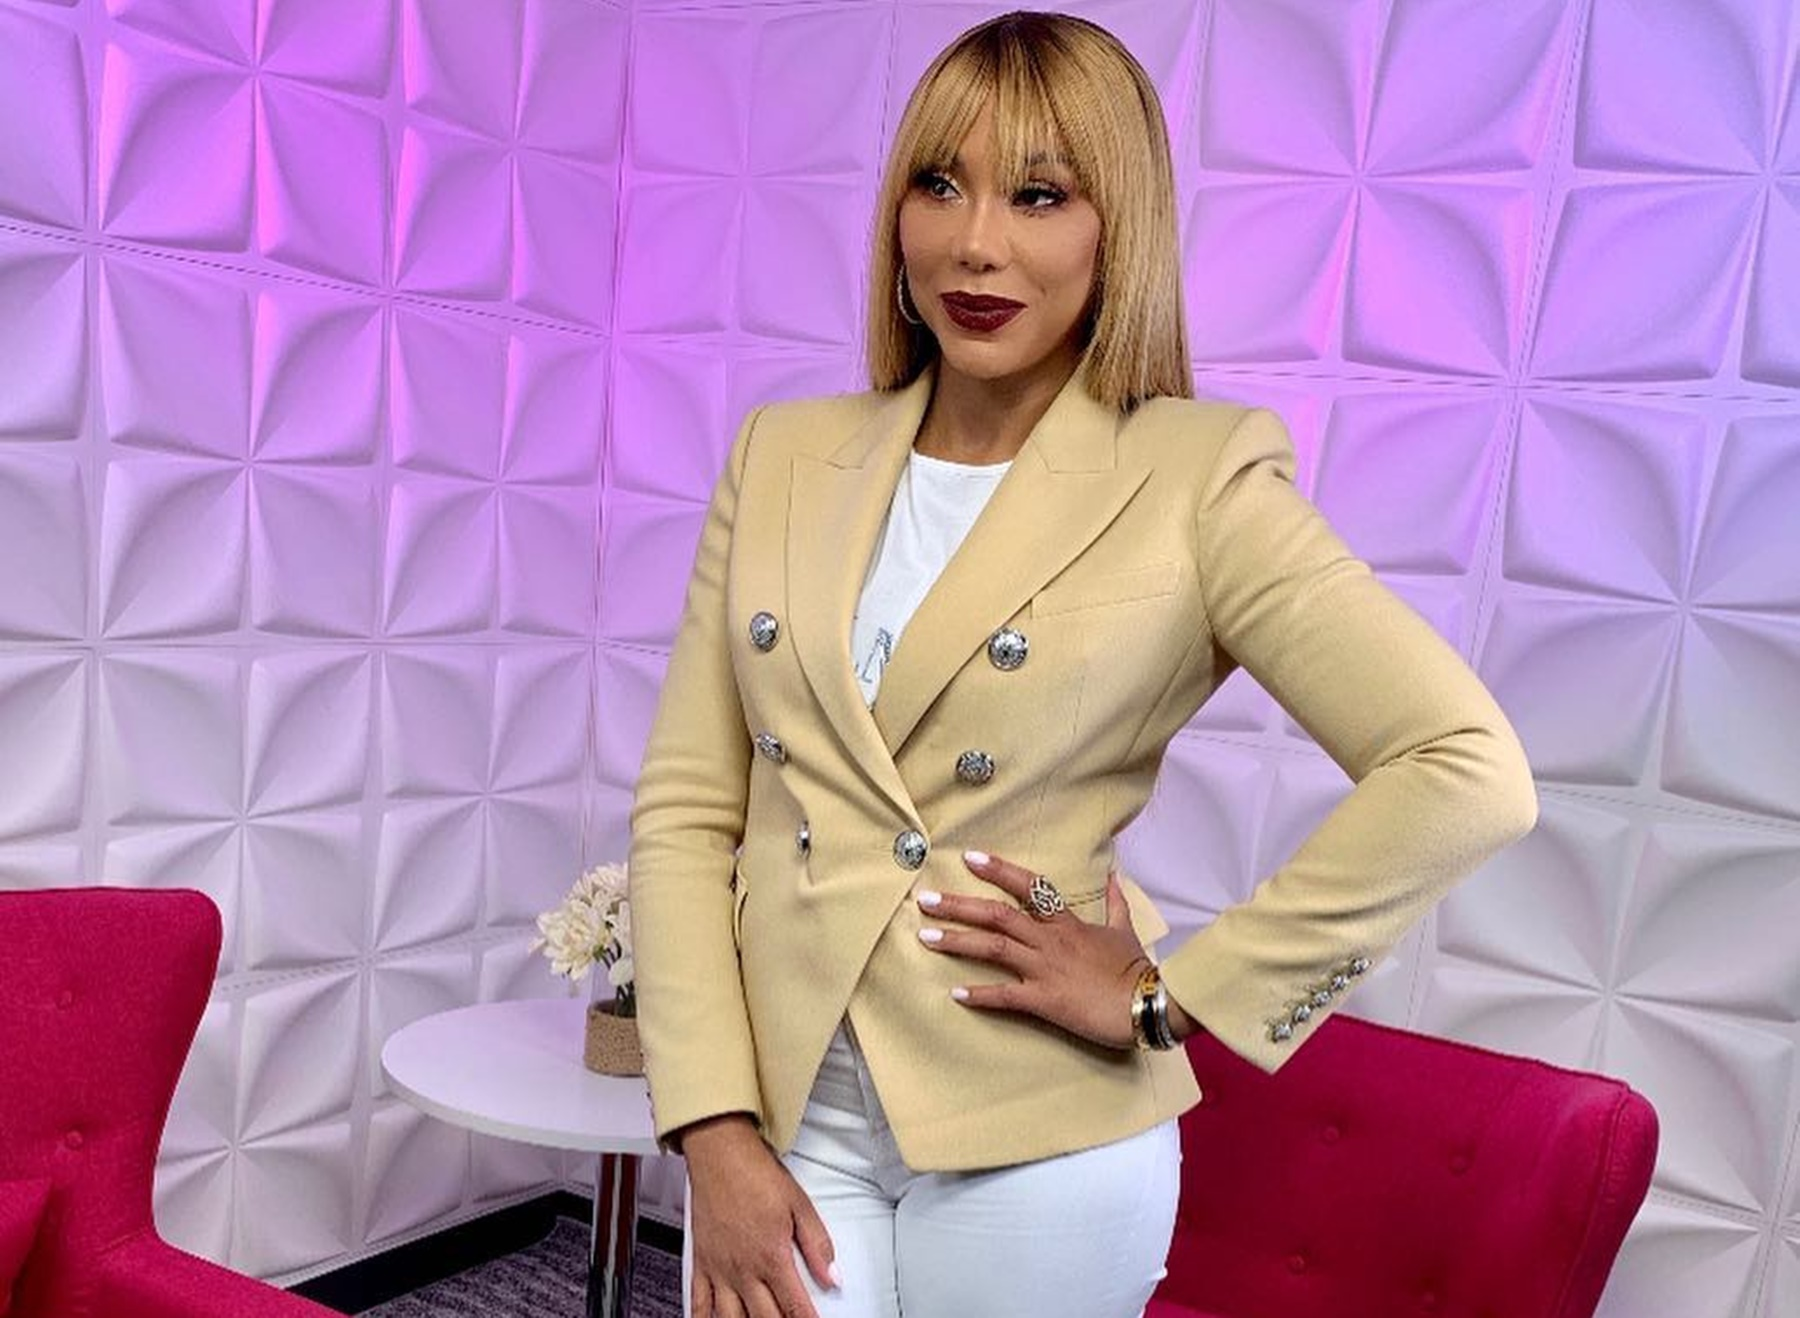 tamar-braxton-pens-heartfelt-apology-to-one-of-her-sisters-after-slamming-producers-for-making-her-look-crazy-on-braxton-family-values